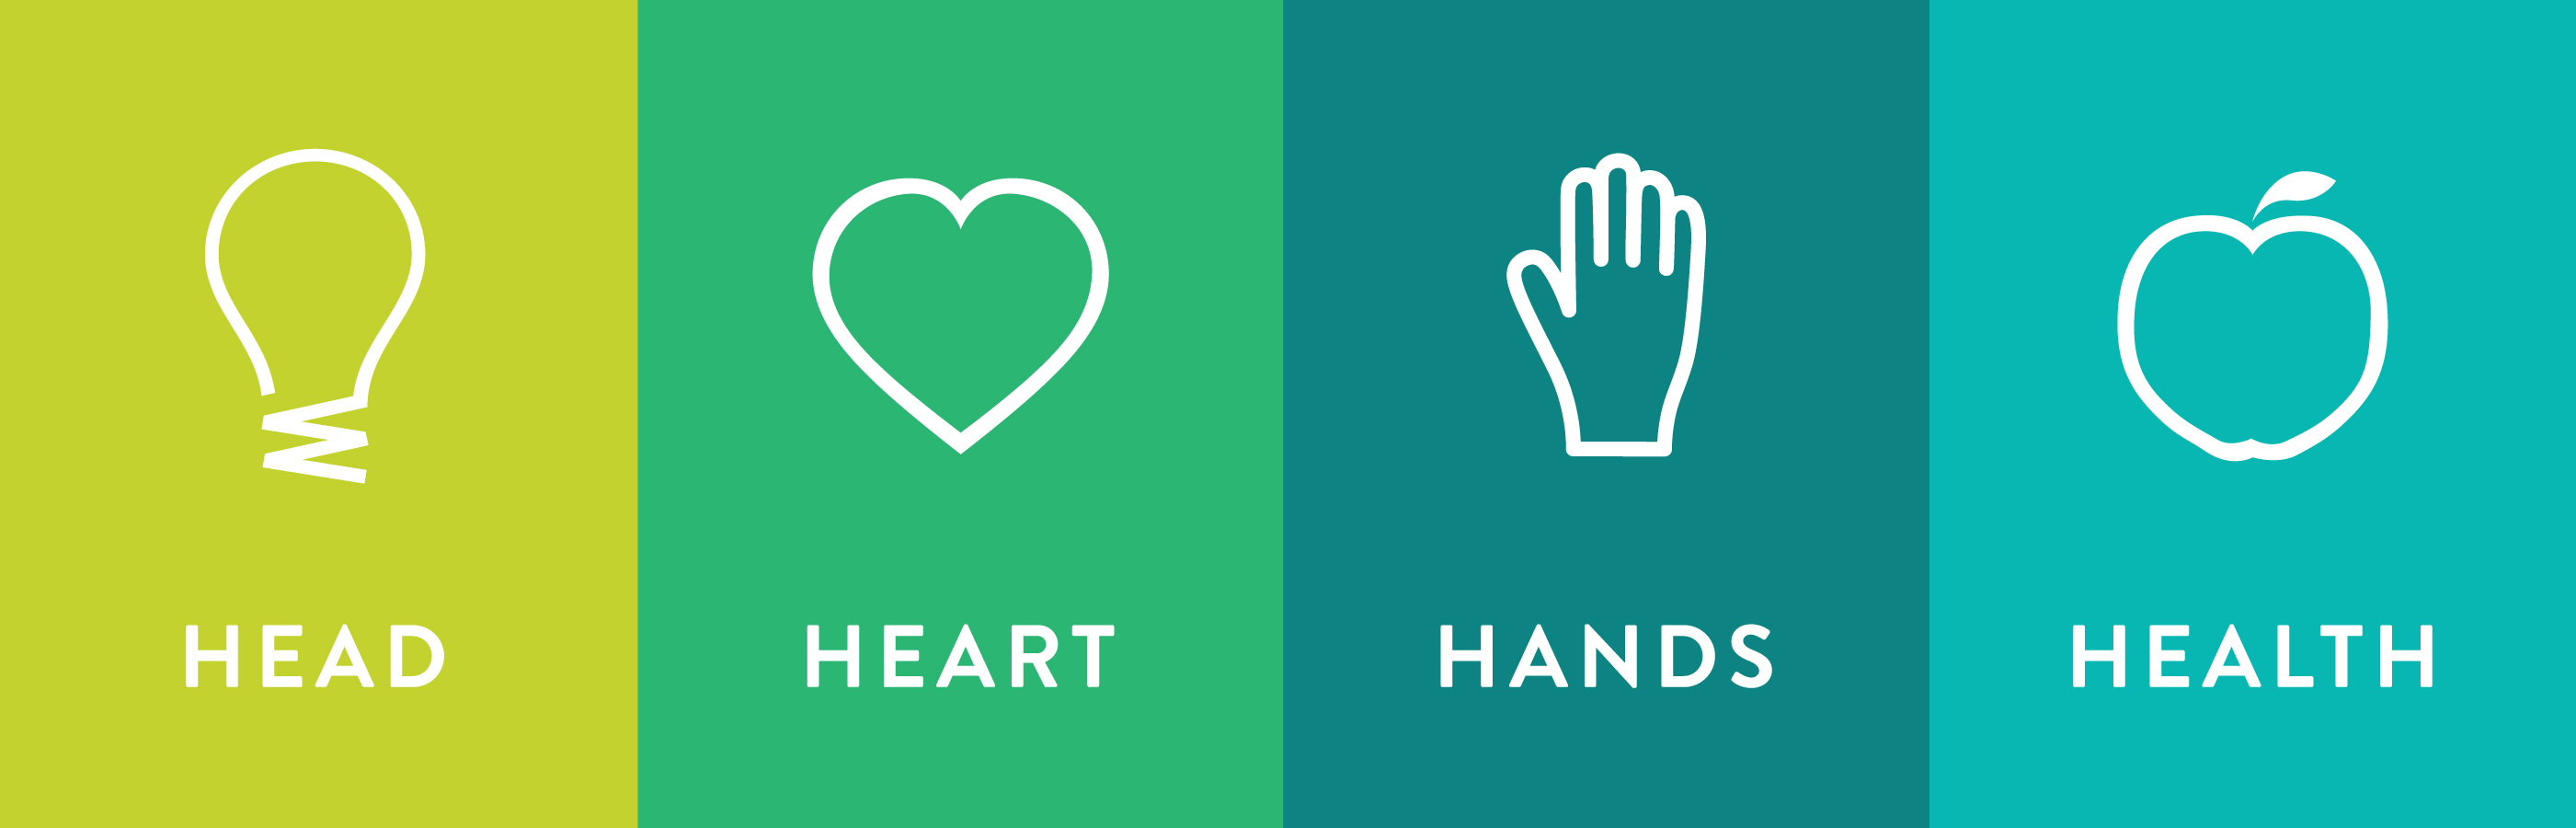 4H tenants:  head, heart, hands, health